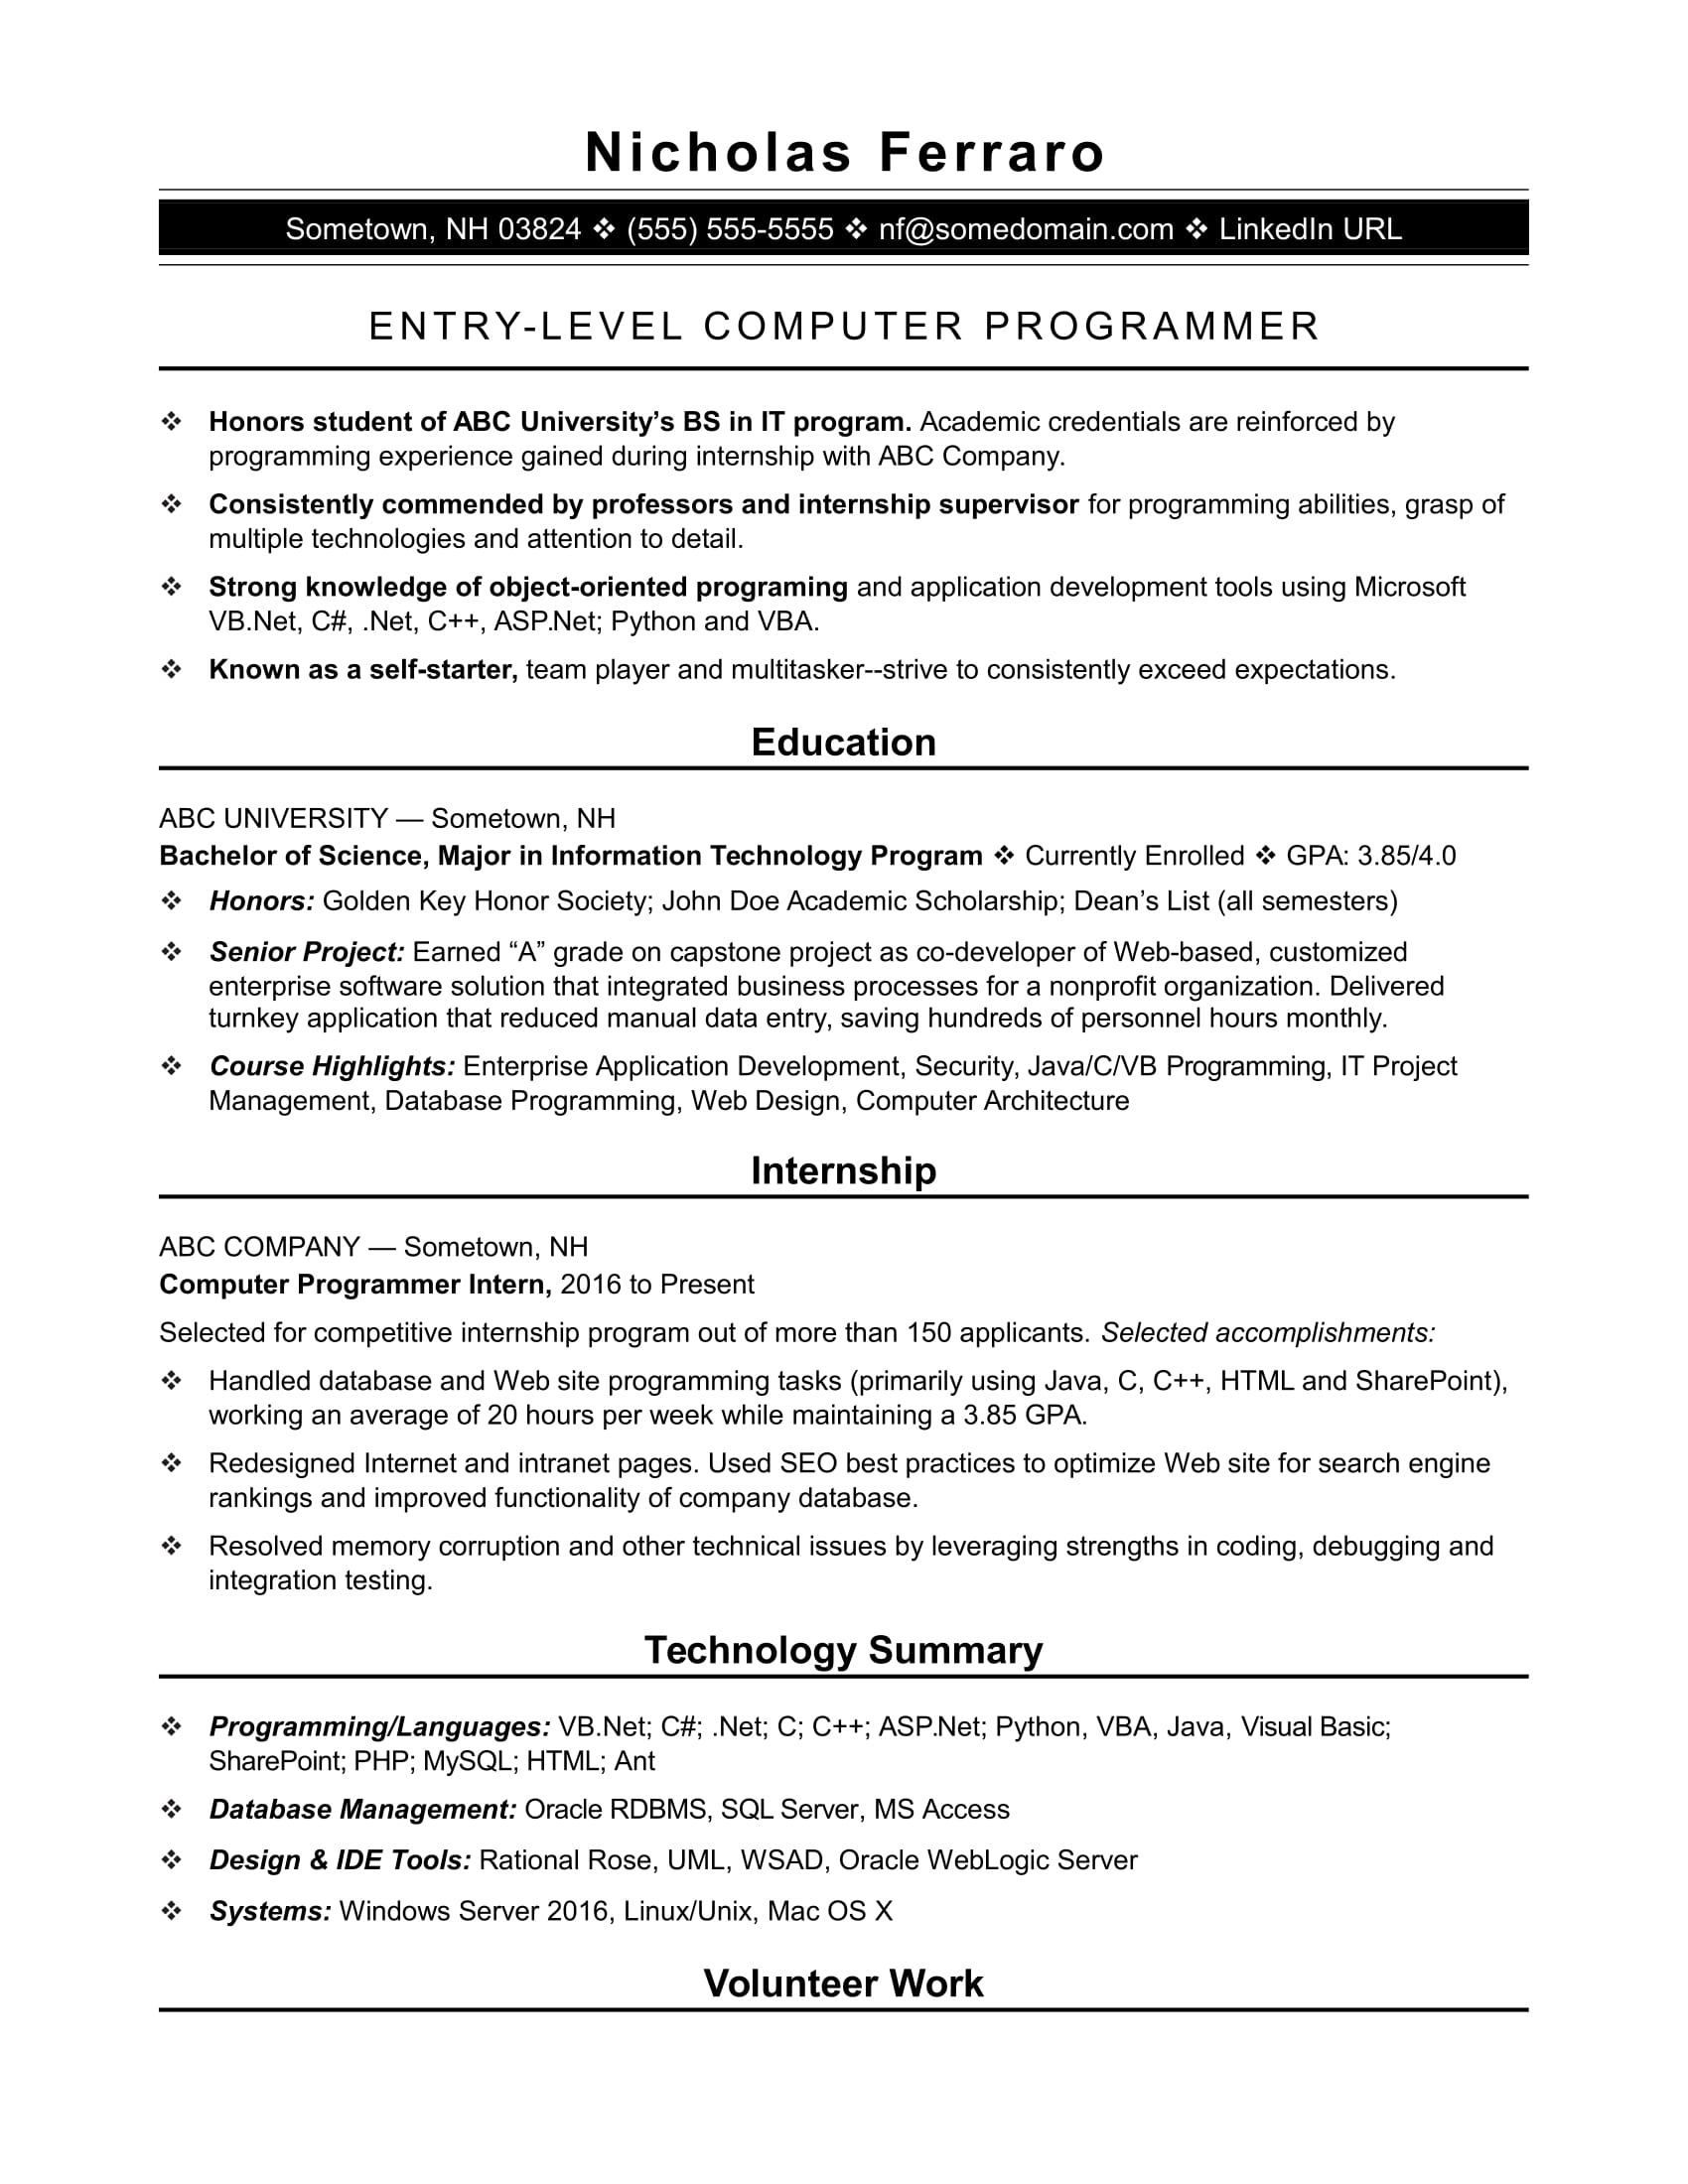 resume Programmer Resume Format sample resume for an entry level computer programmer monster com programmer